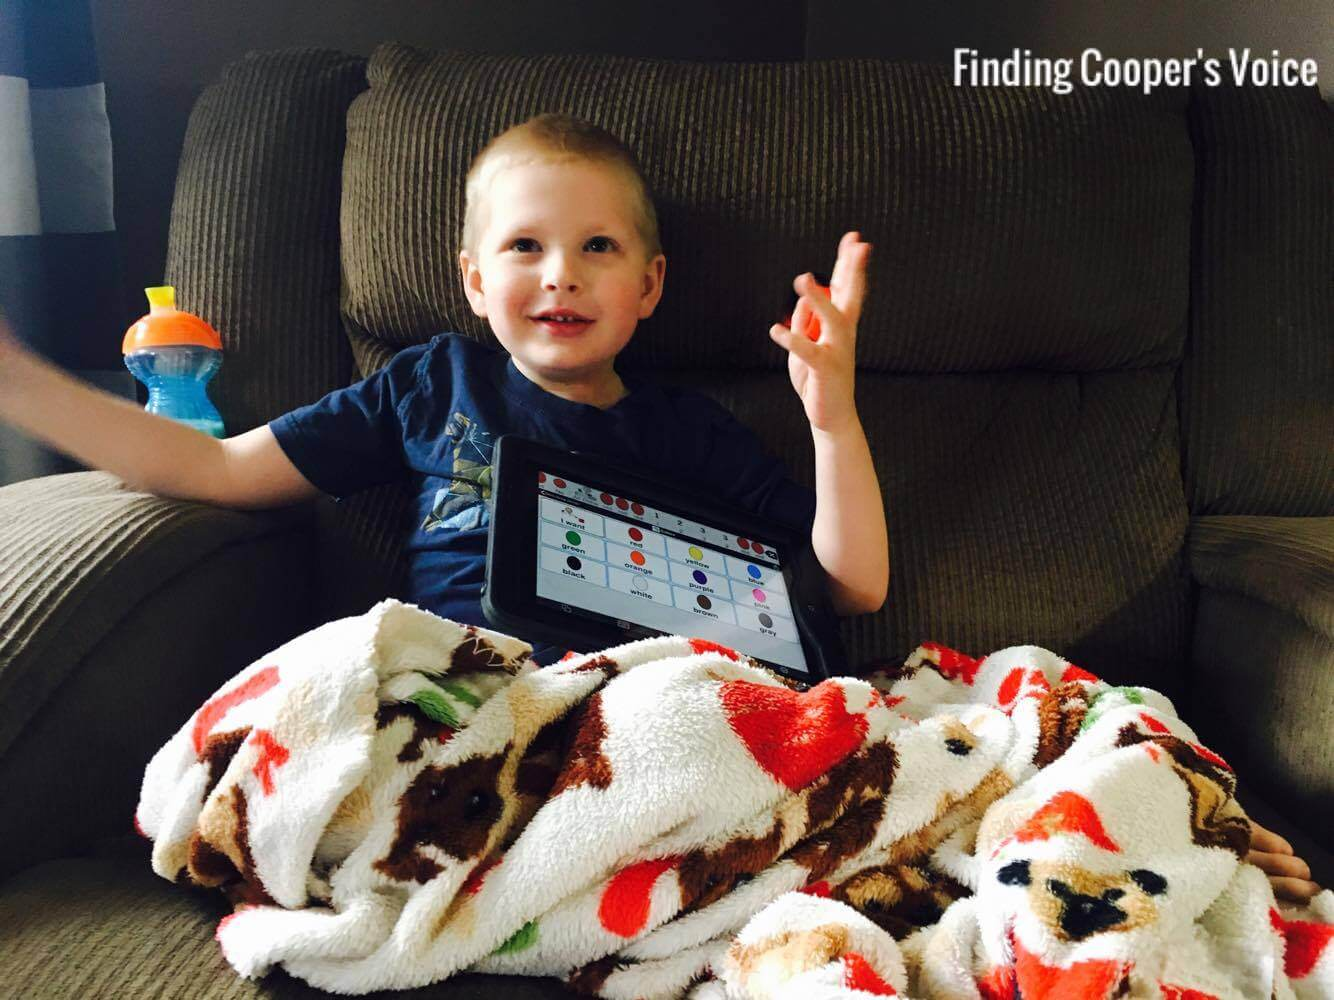 Assistive Technology for Kids With Autism - Finding Cooper's Voice